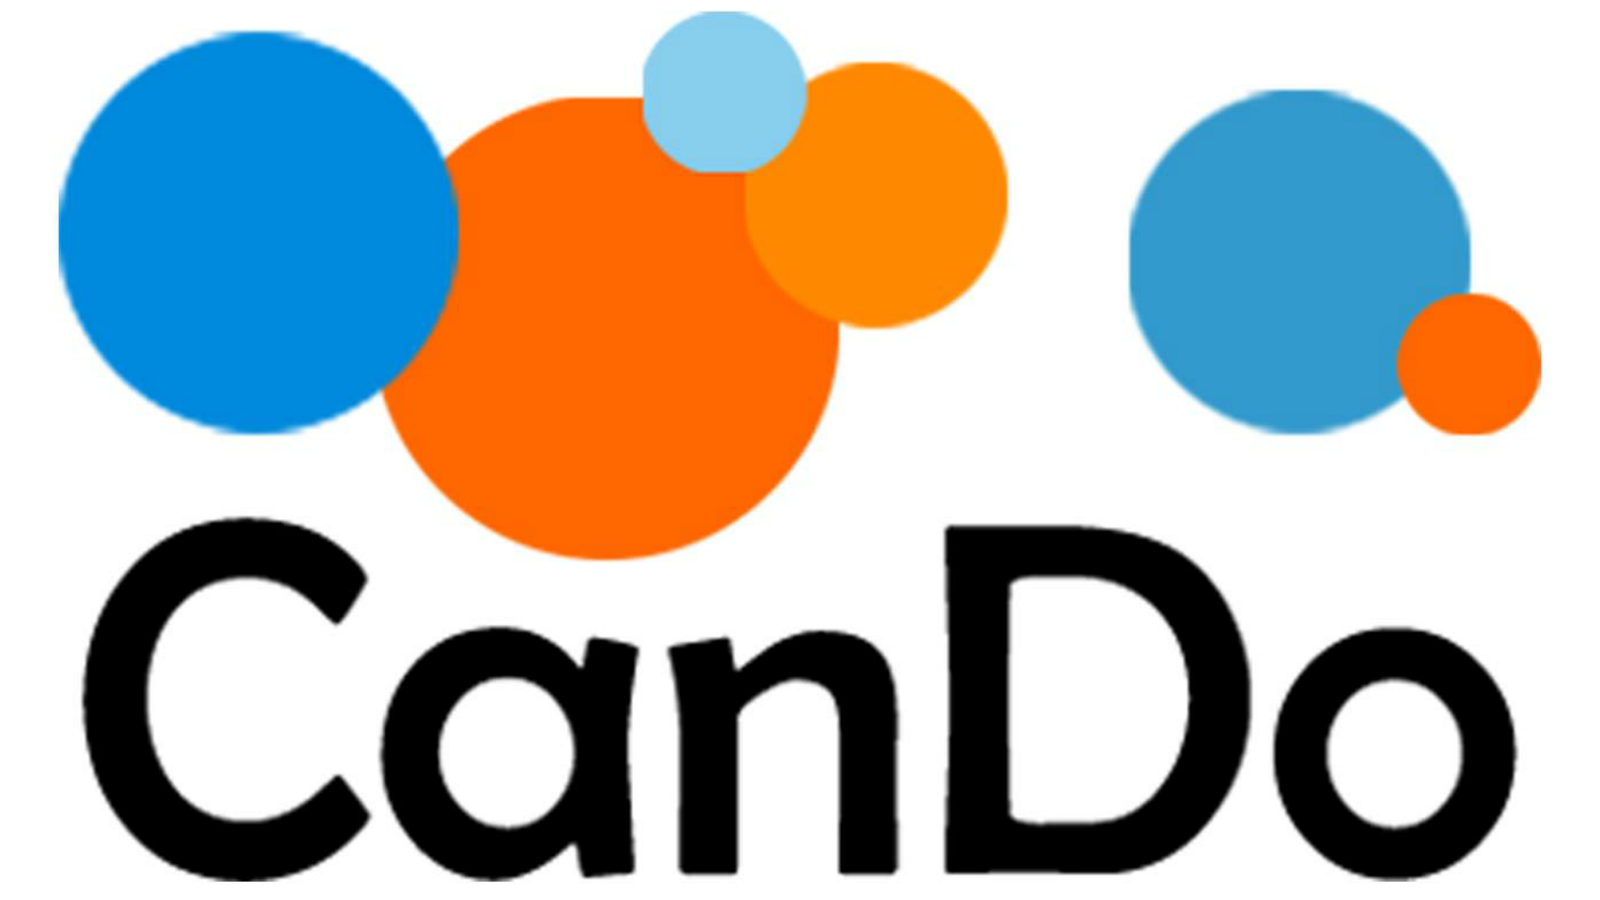 The logo for CanDo, featuring blue and orange circles and the word 'CanDo'.